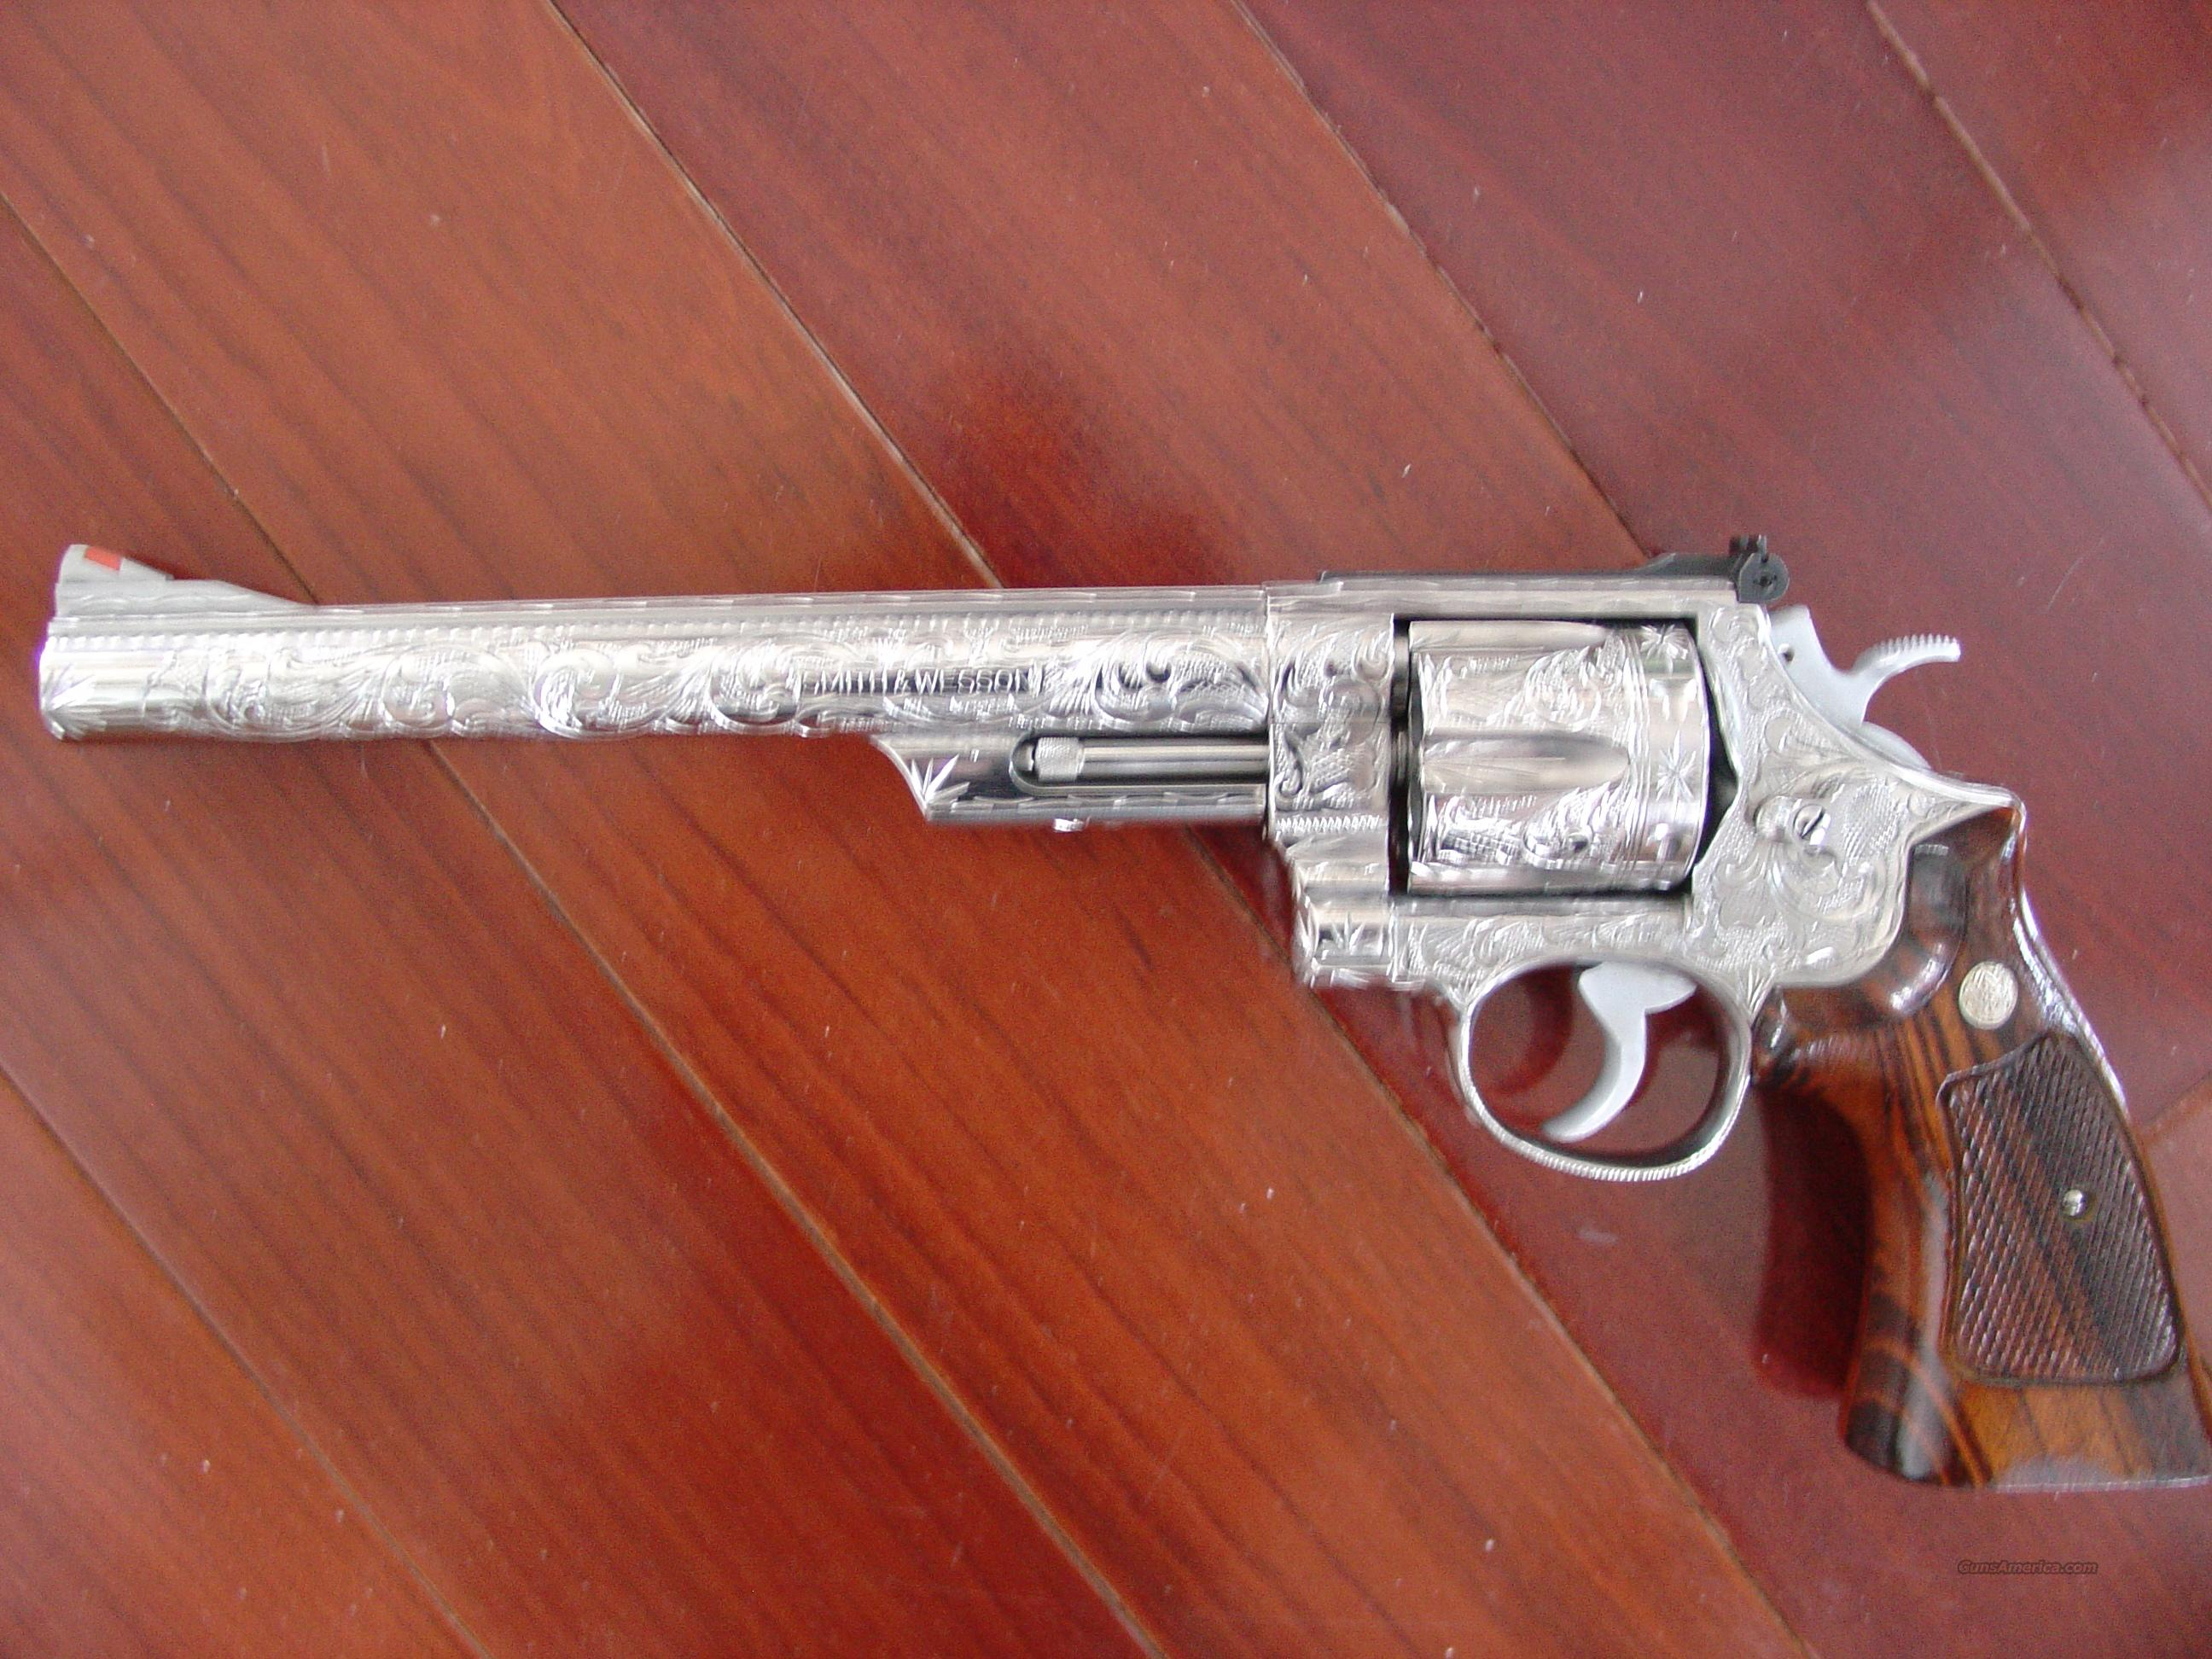 "Smith & Wesson model 629-1,8 3/8"" barrel,polished nickel & fully master hand scroll engraved,1982-1985,44 magnum,awesome 1 of a kind showpiece !!  Guns > Pistols > Smith & Wesson Revolvers > Model 629"